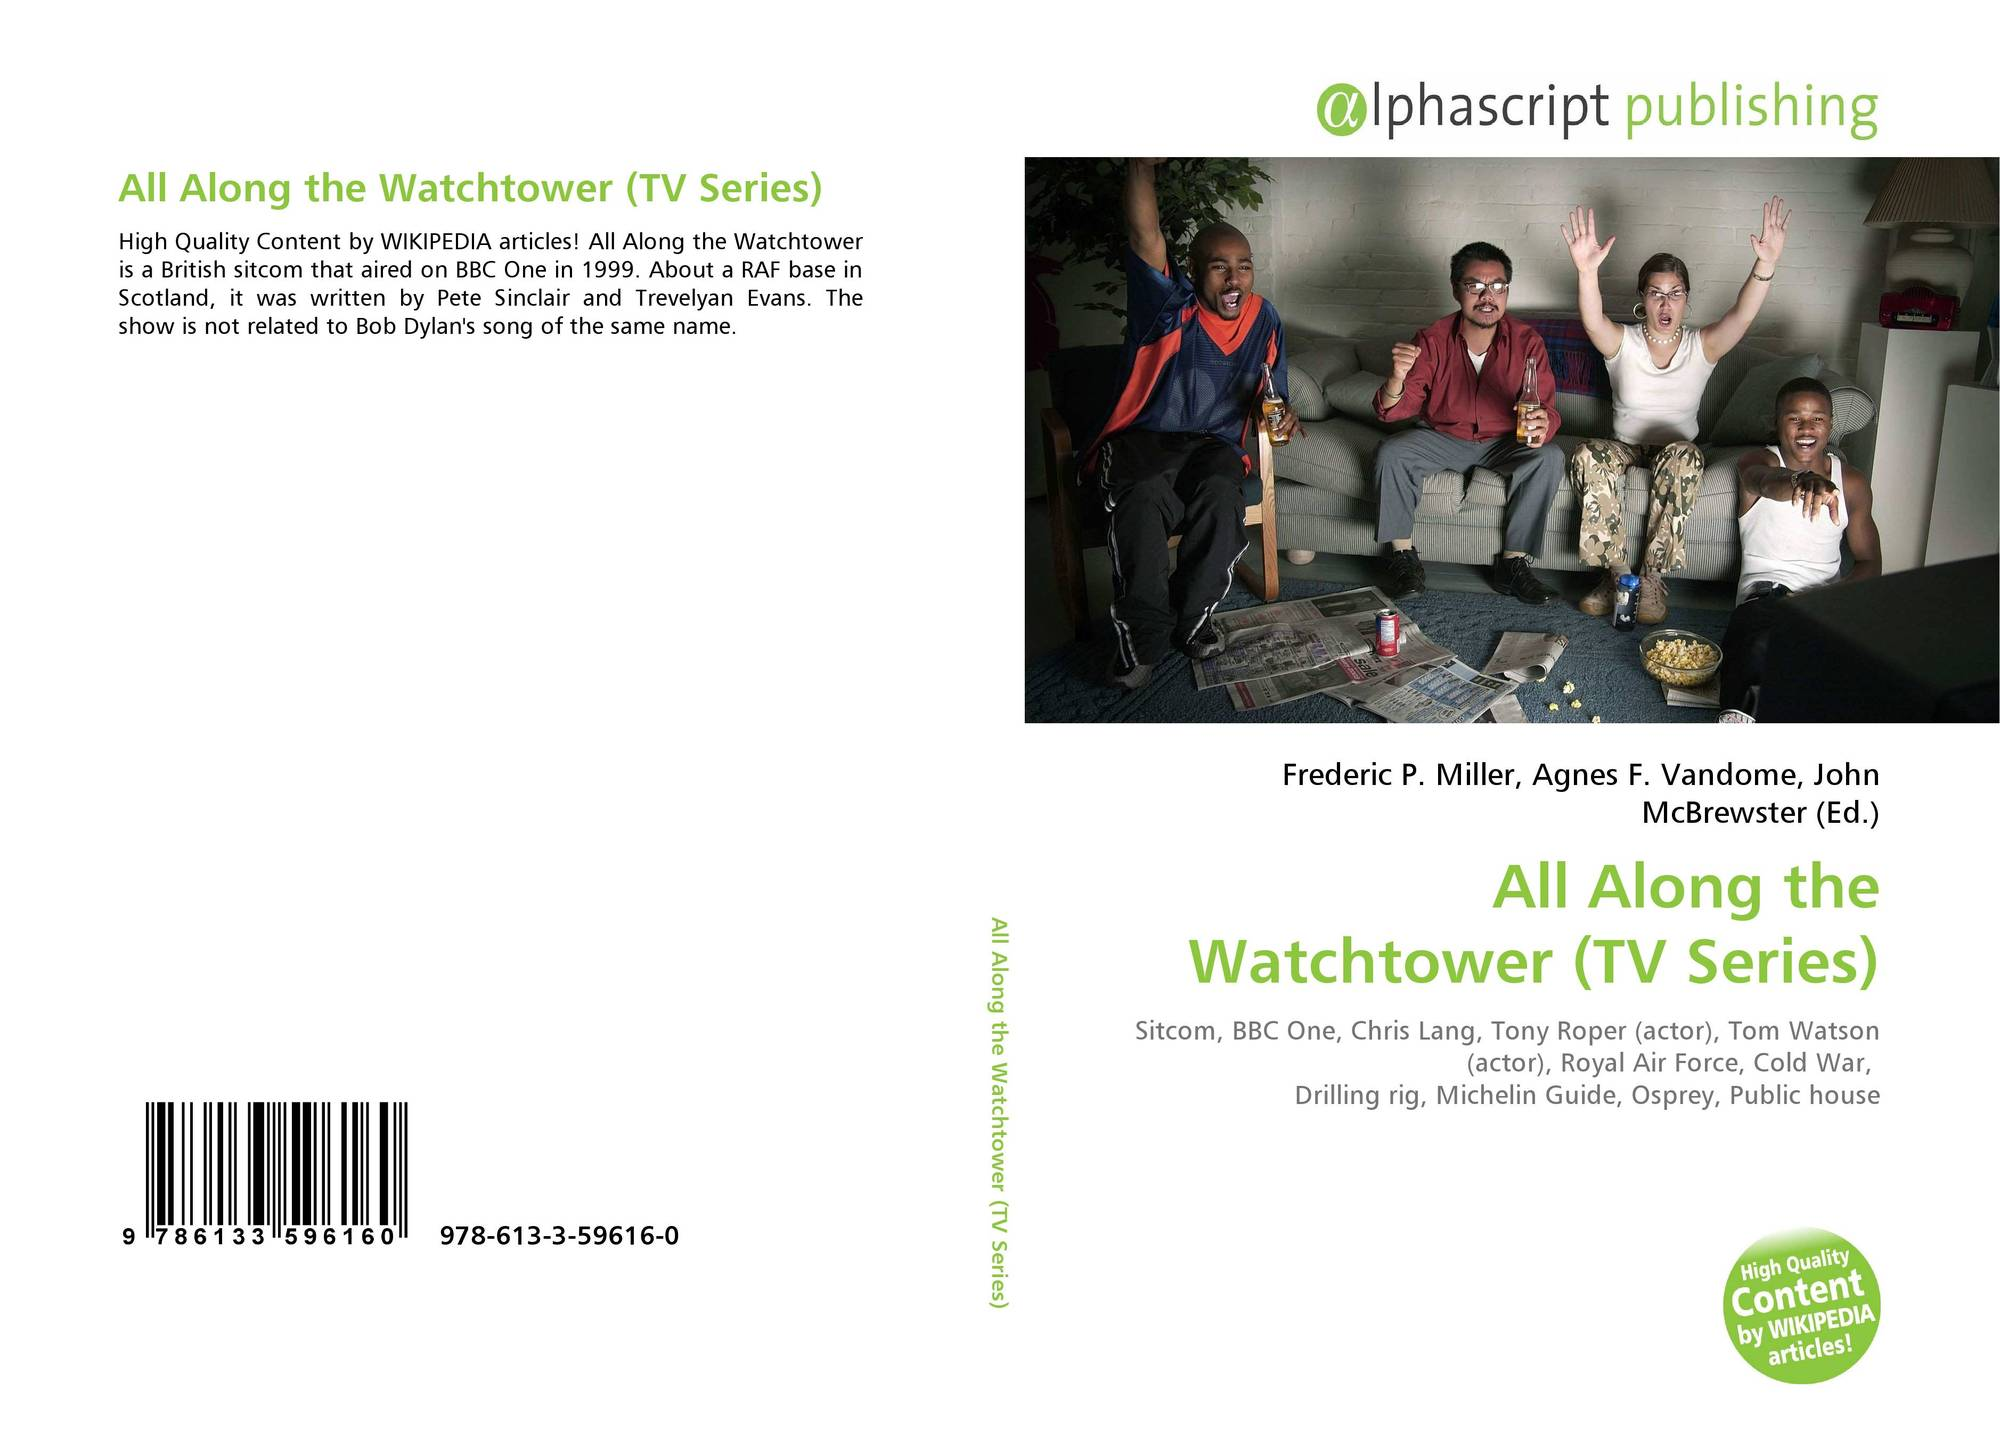 All Along the Watchtower (TV Series), 978-613-3-59616-0